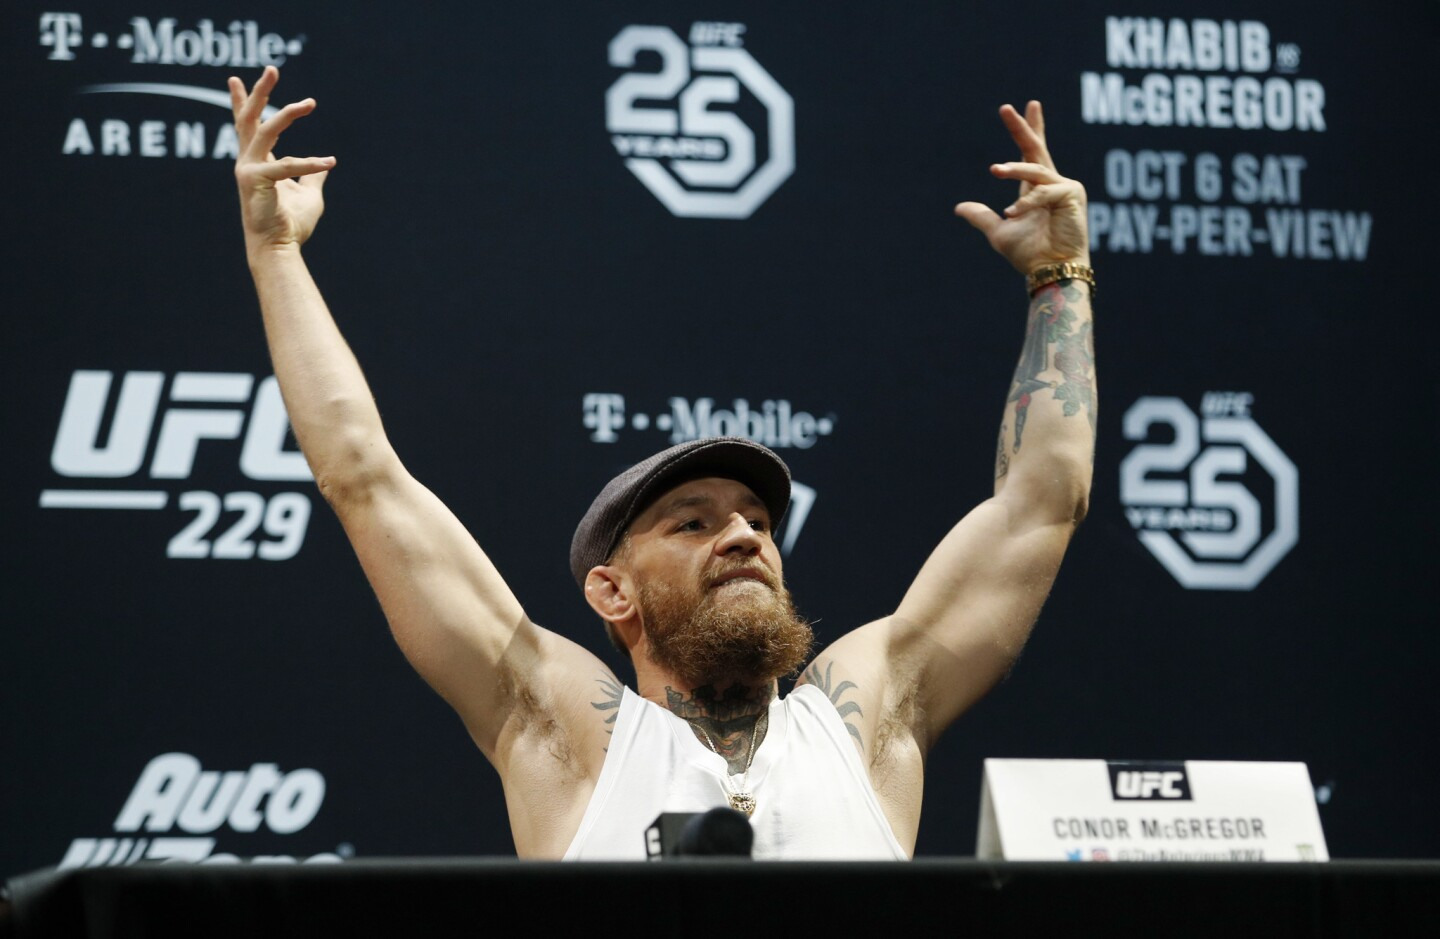 Conor McGregor raises his arms during a news conference for the UFC 229 mixed martial arts bouts Thursday, Oct. 4, 2018, in Las Vegas. McGregor is scheduled to fight Khabib Nurmagomedov on Saturday in Las Vegas. (AP Photo/John Locher)